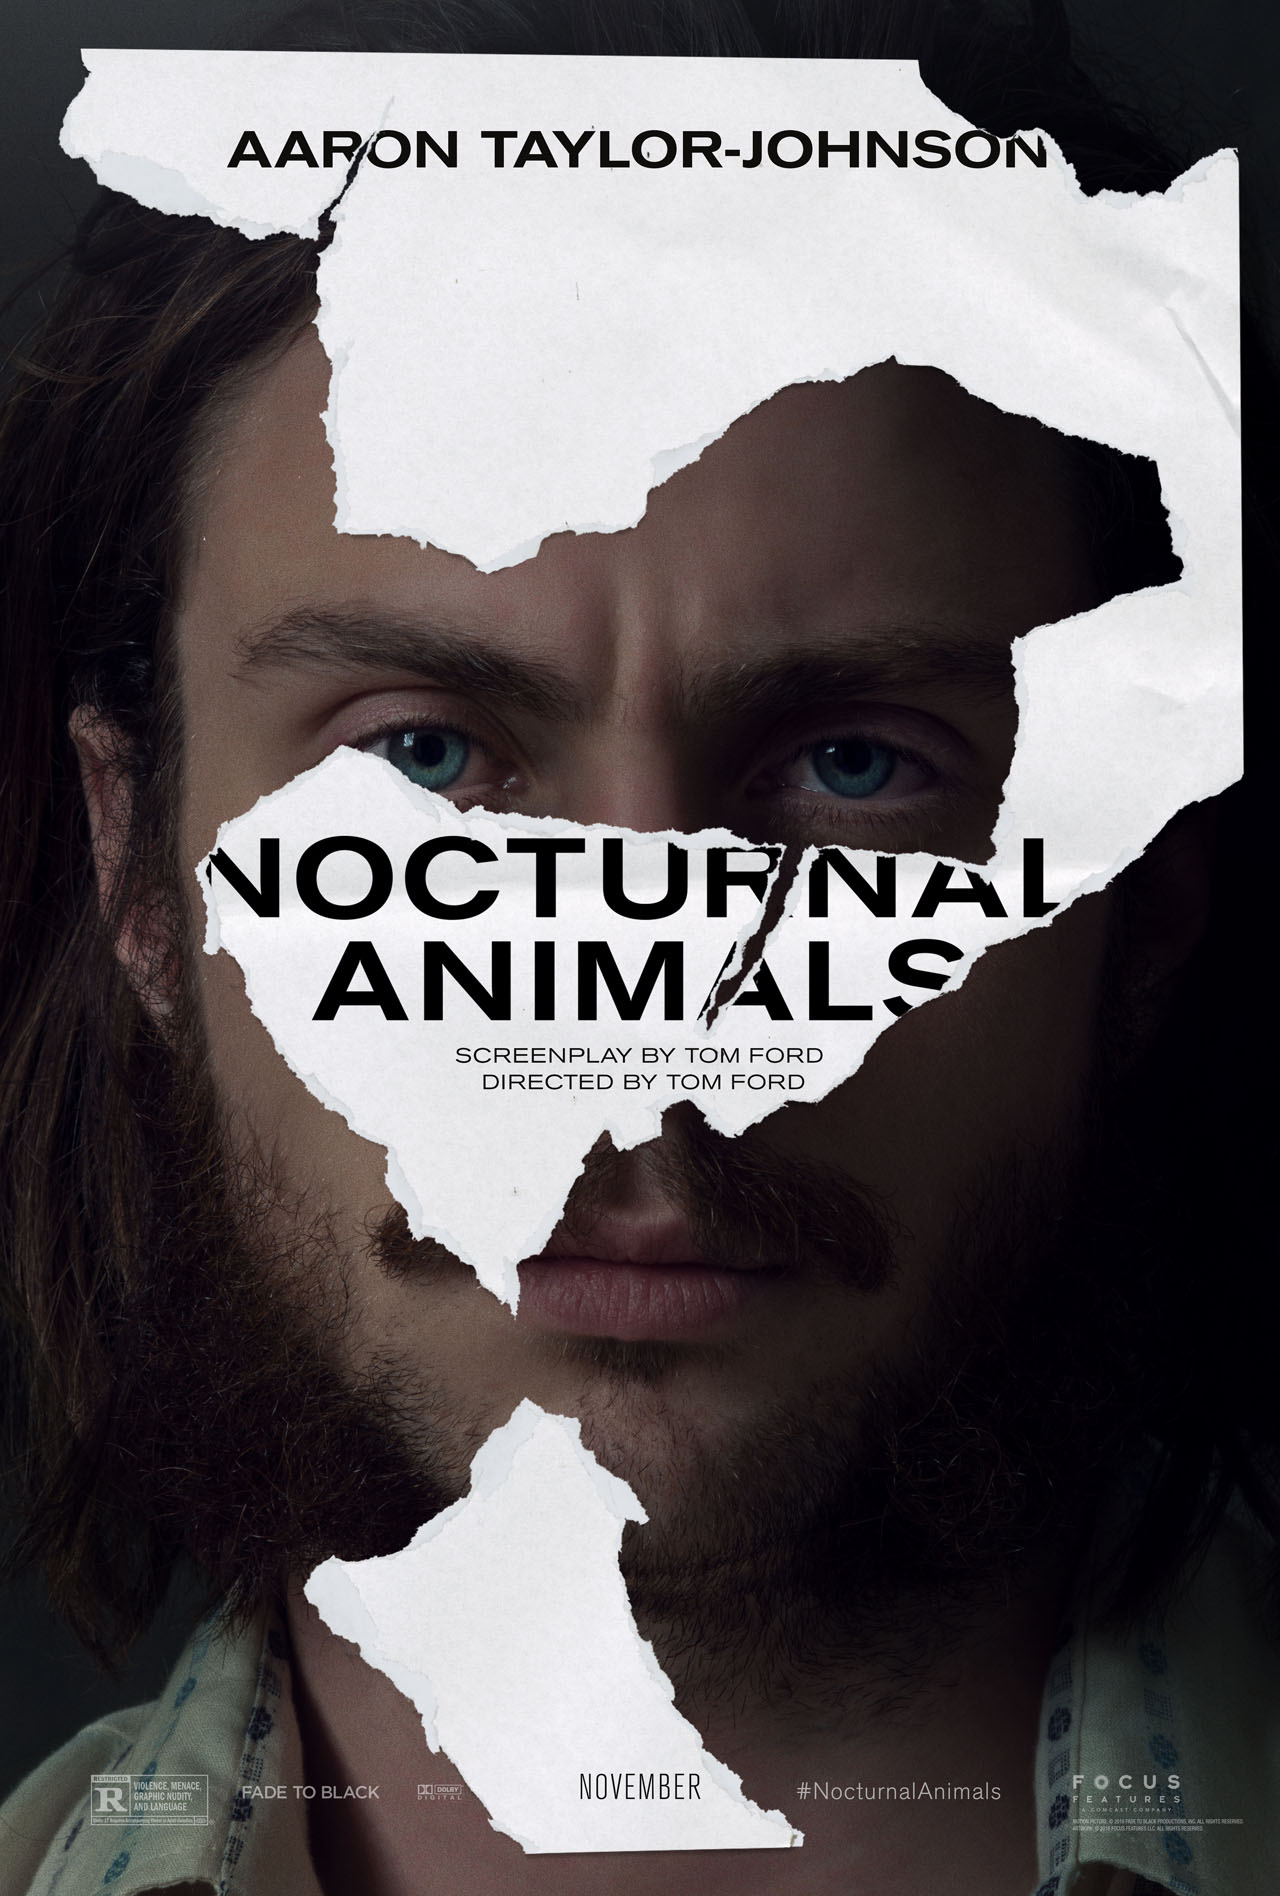 Tom Ford's Nocturnal Animals Take Center Stage In Thrilling Teaser